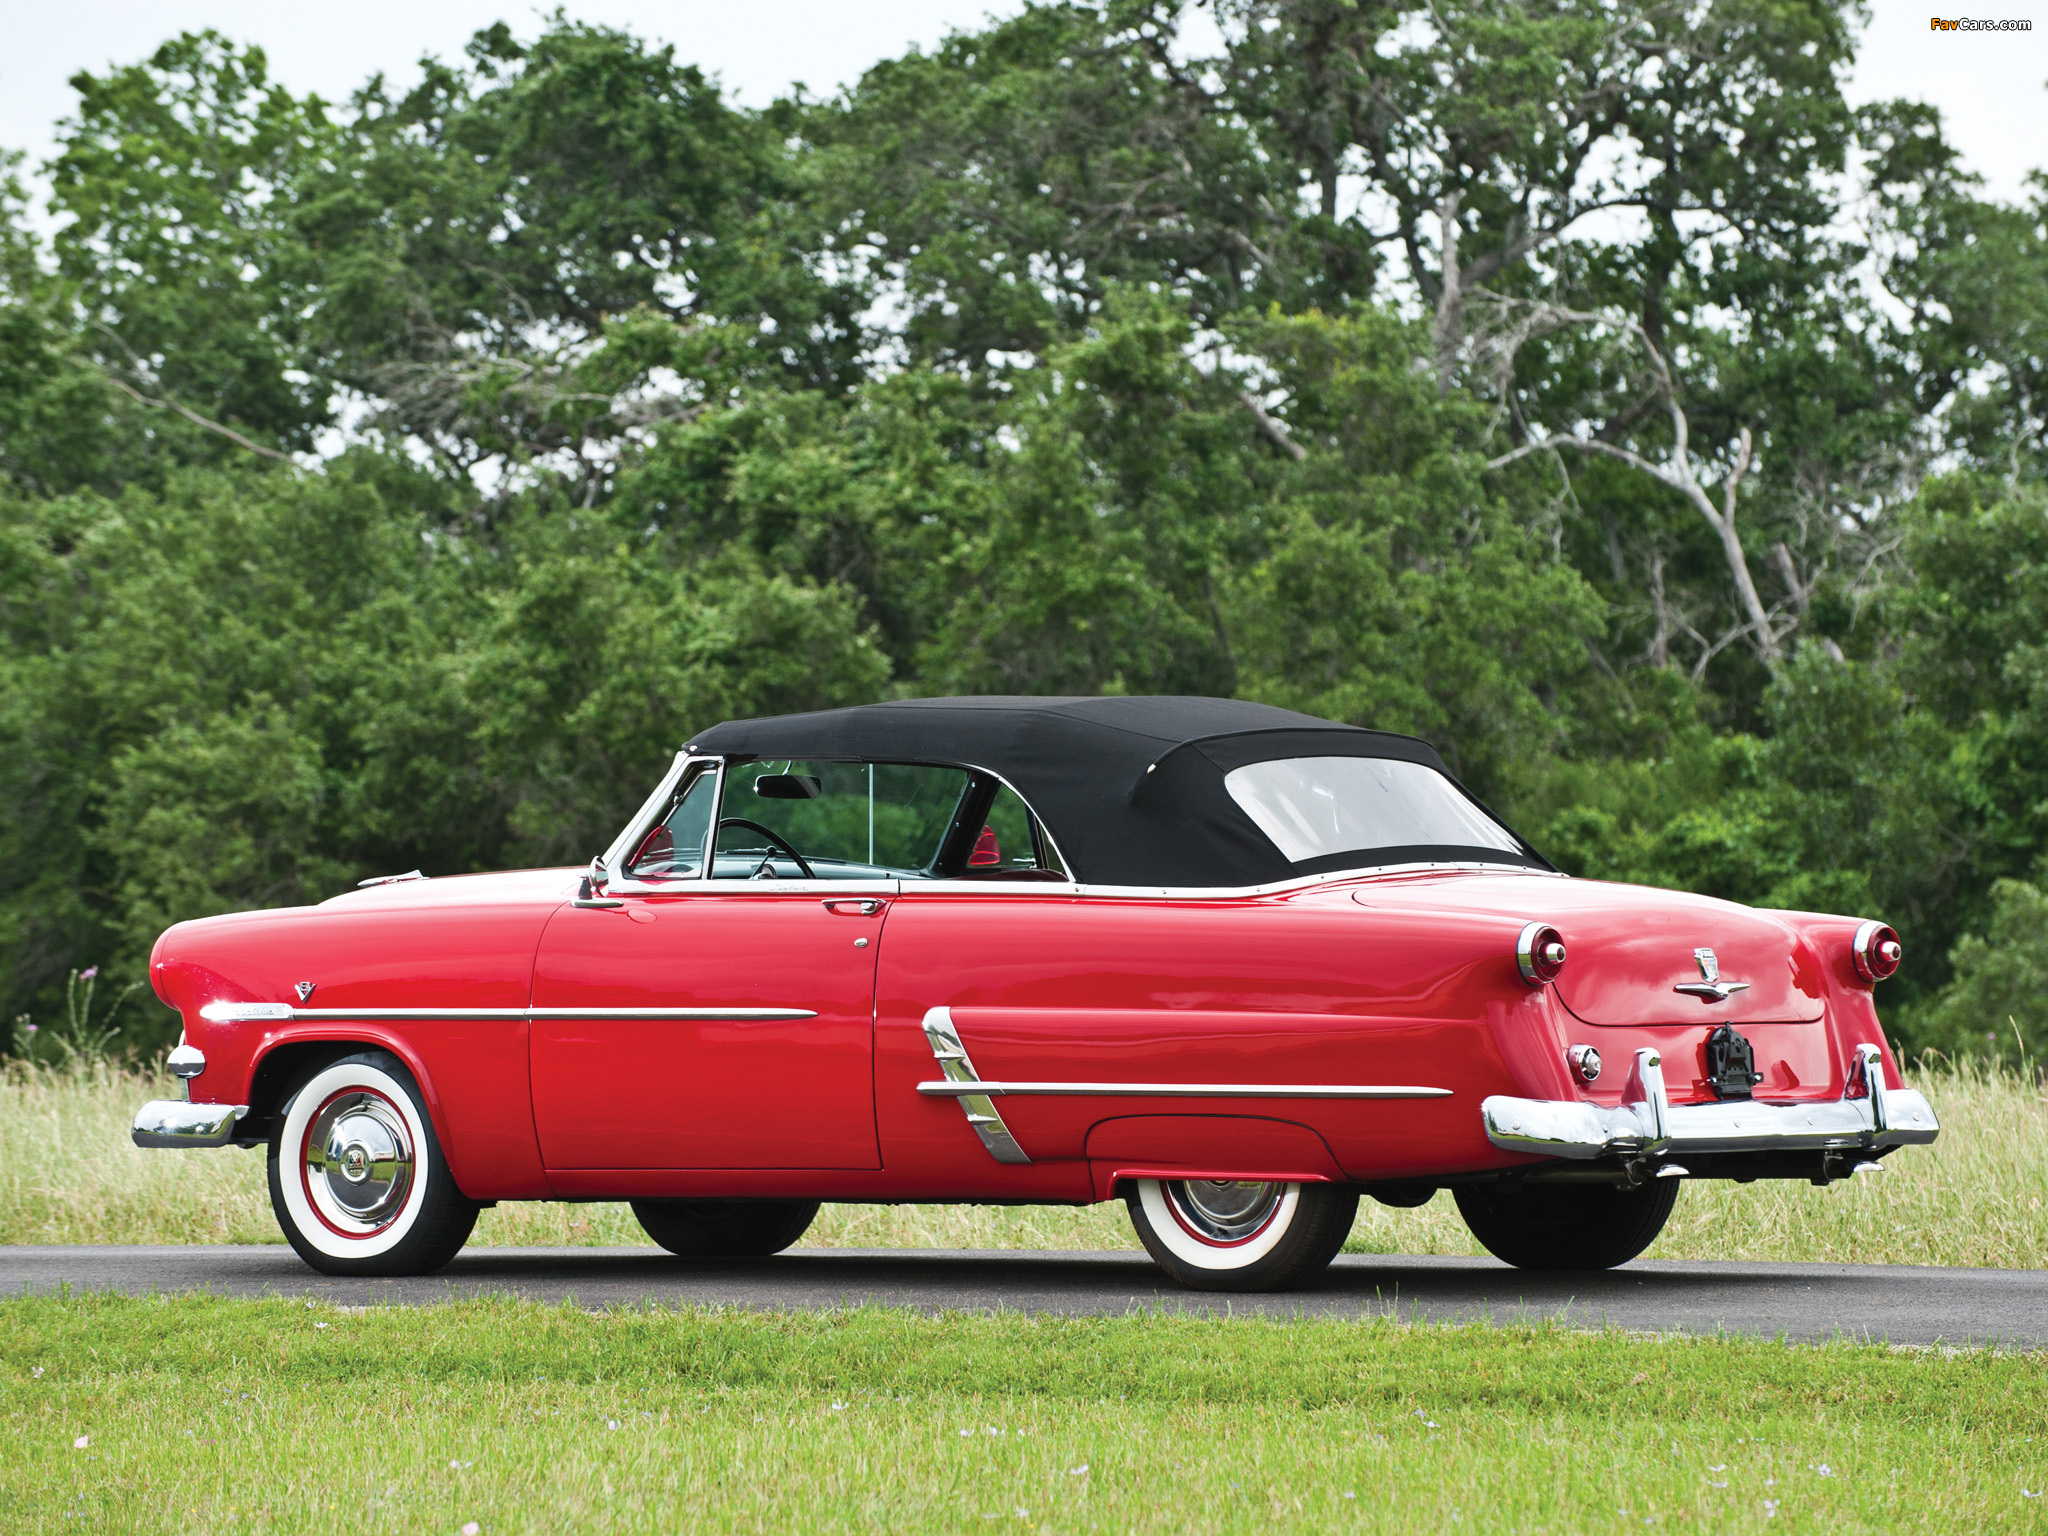 Ford Crestline Sunliner Convertible Coupe (76B) 1953 images (2048 x 1536)